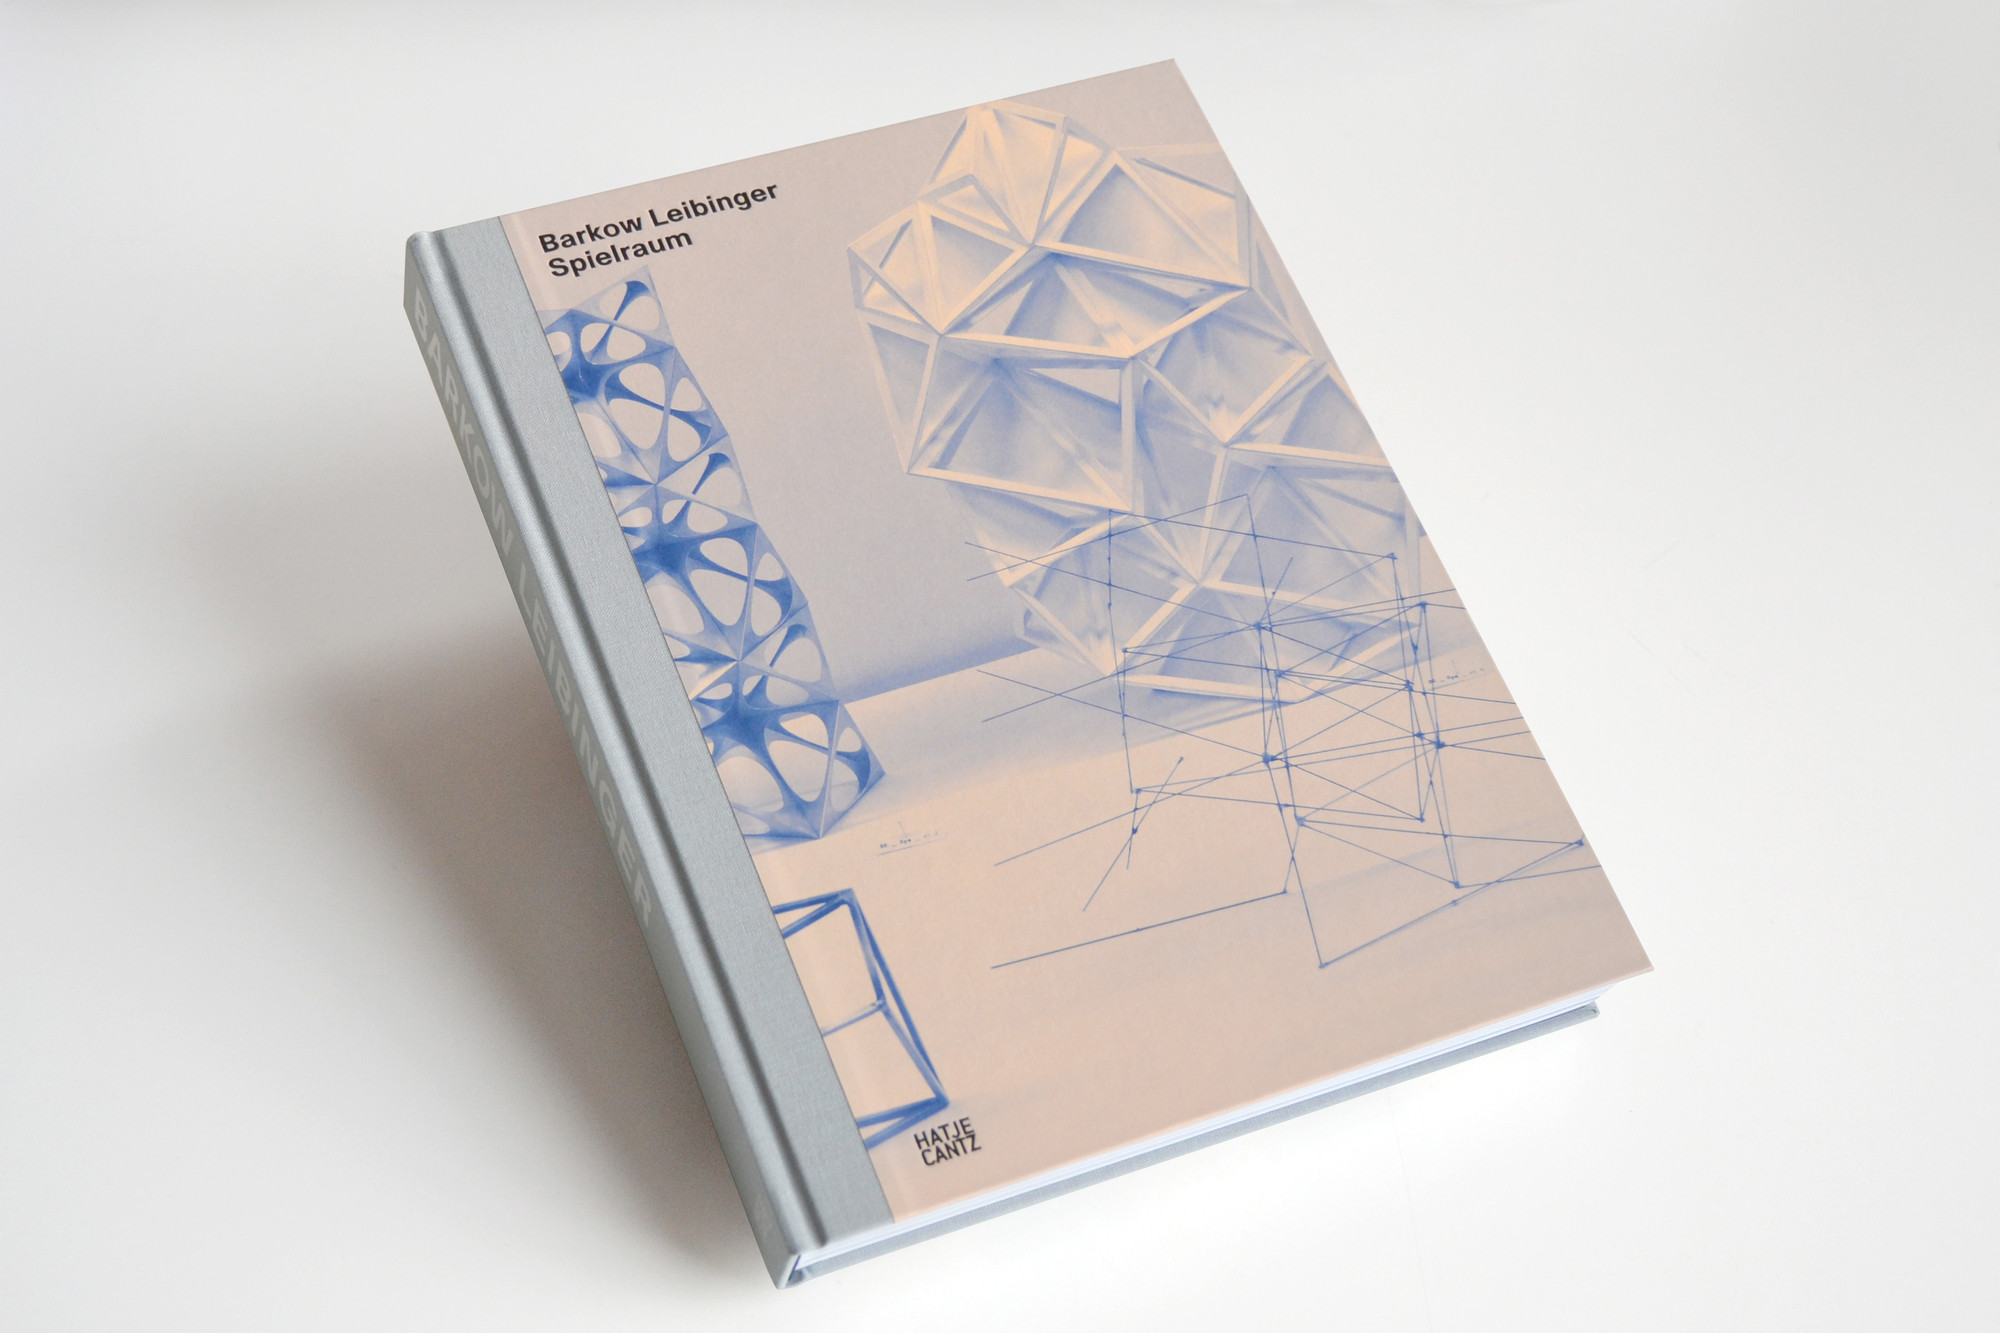 Architecture as Instrument: The Role of Spielraum in the Work of Barkow Leibinger, Courtesy of Barkow Leibinger